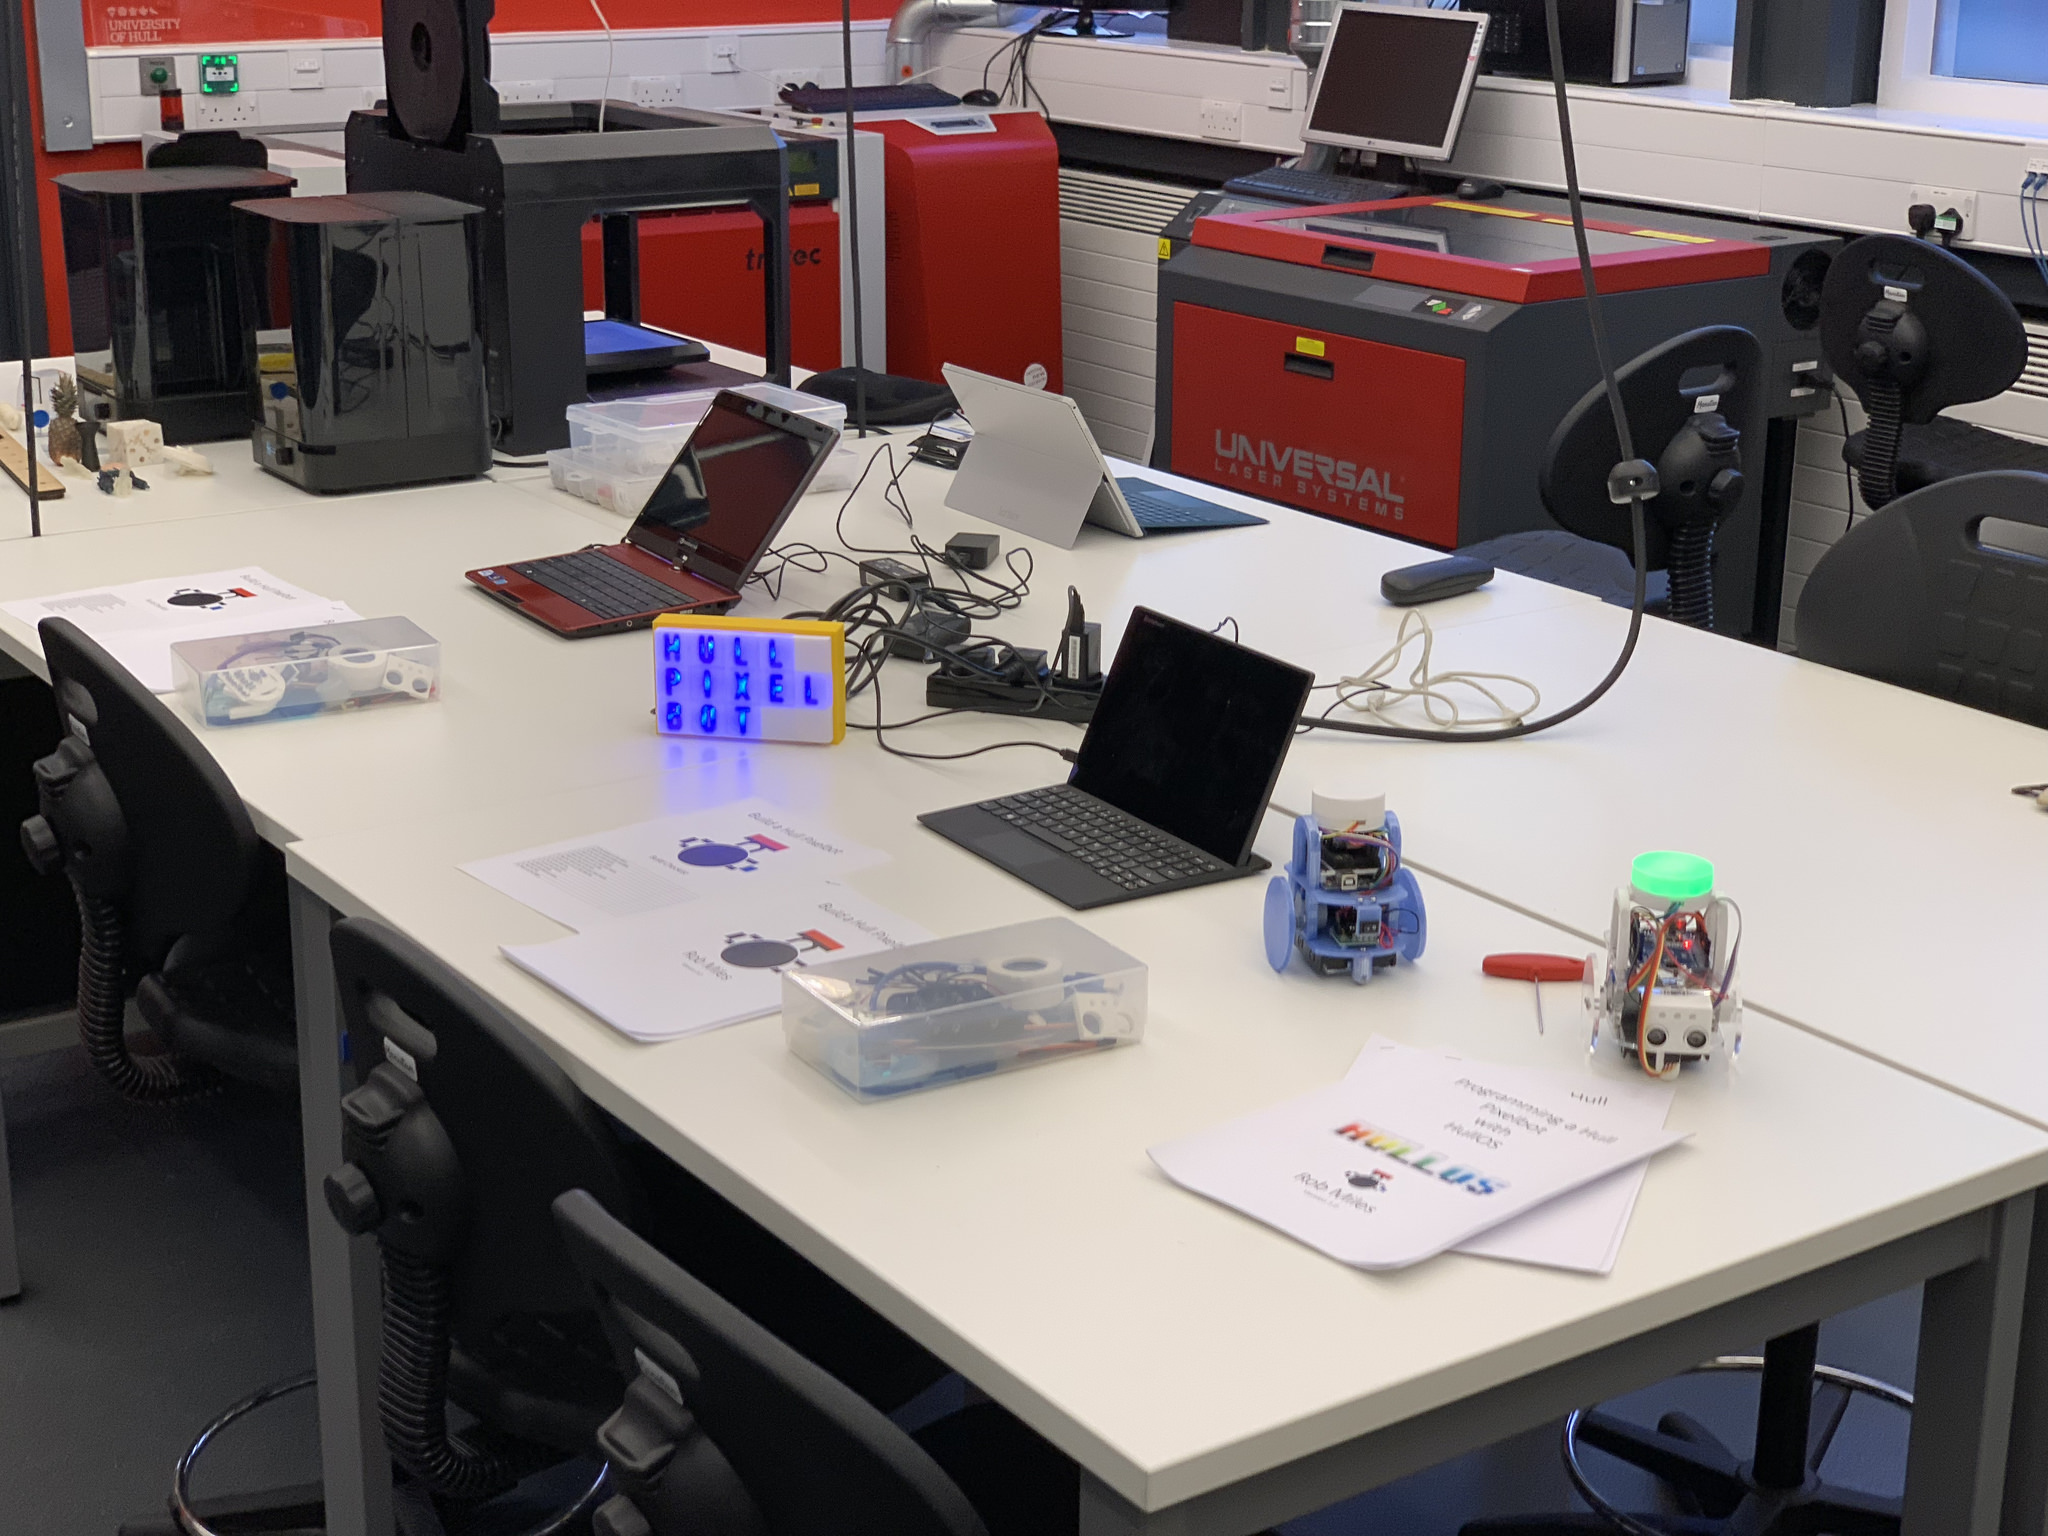 A Hull University Robot Lab